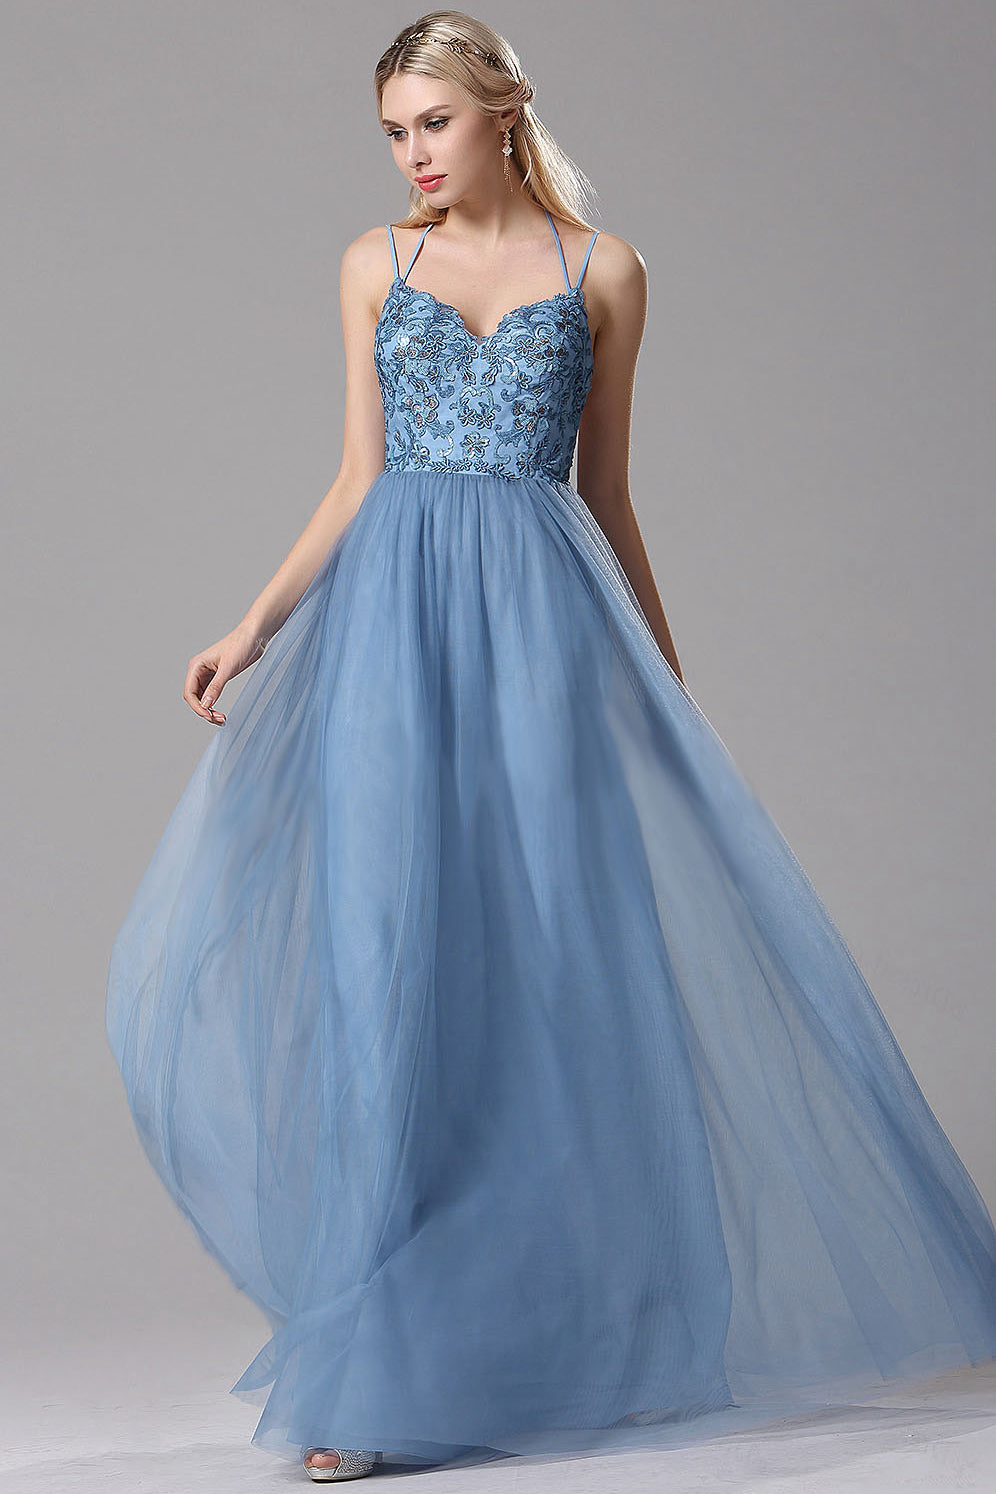 A-Line Sky Blue Lace Tulle Long Prom Dresses with Floral Lace and Spaghetti Straps